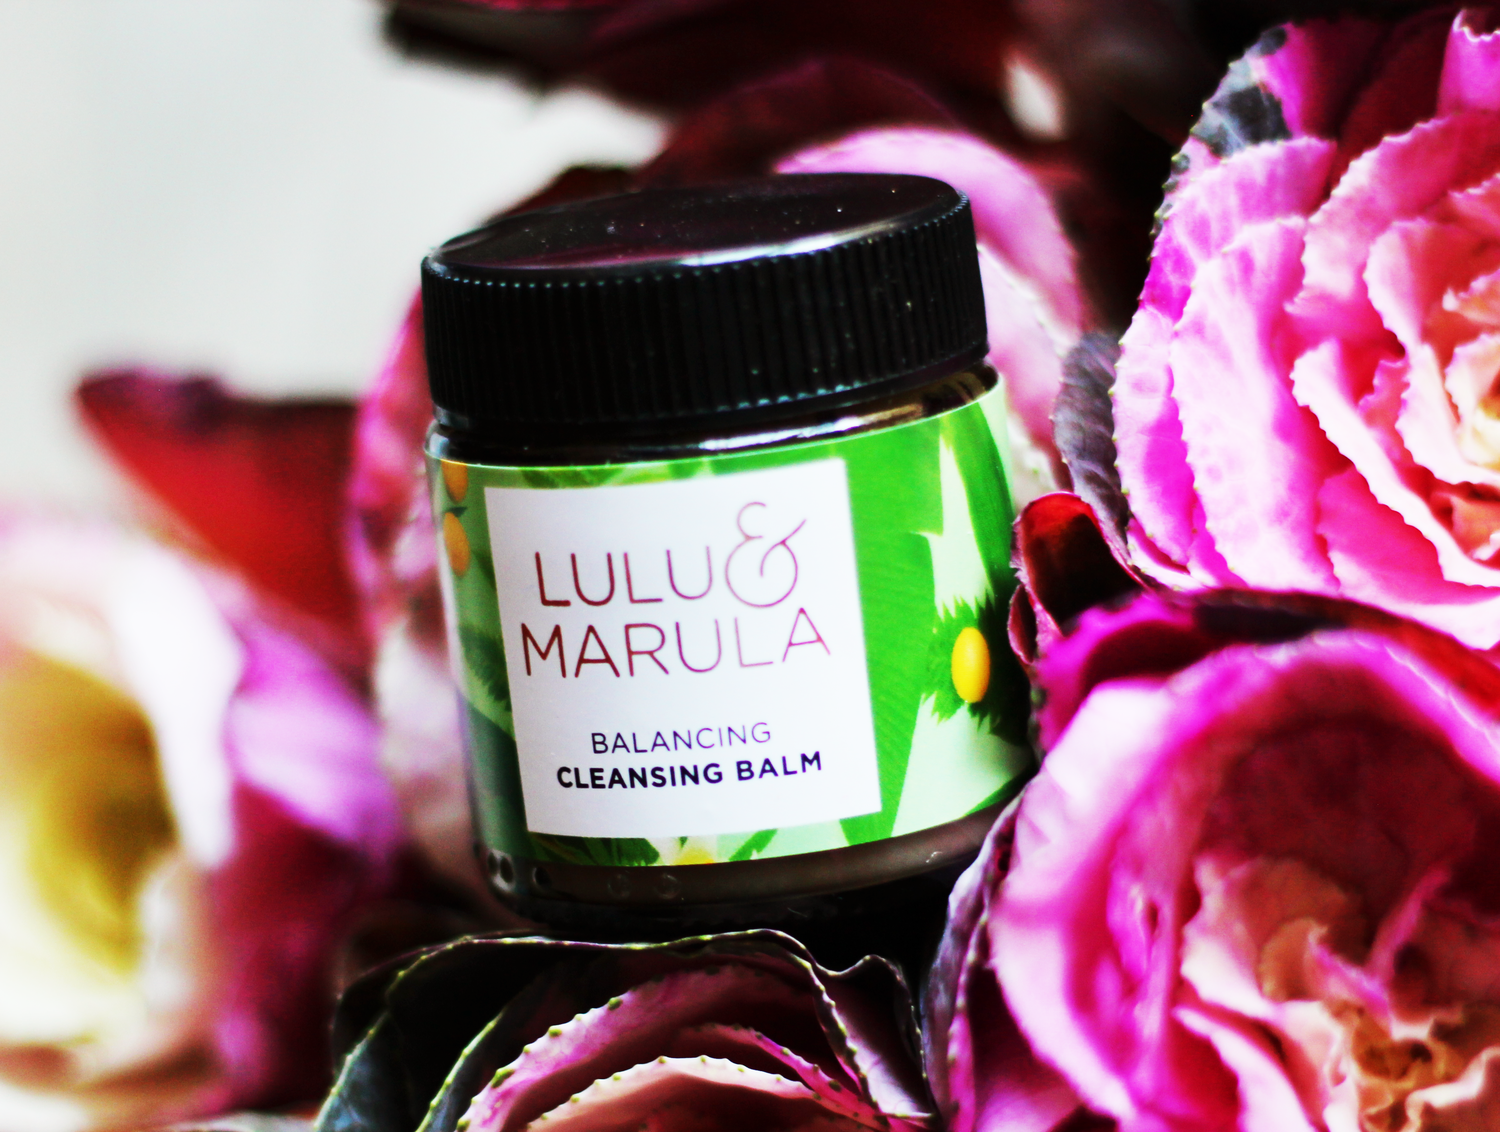 Lulu+and+Marula+Balancing+Cleansing+Balms.png